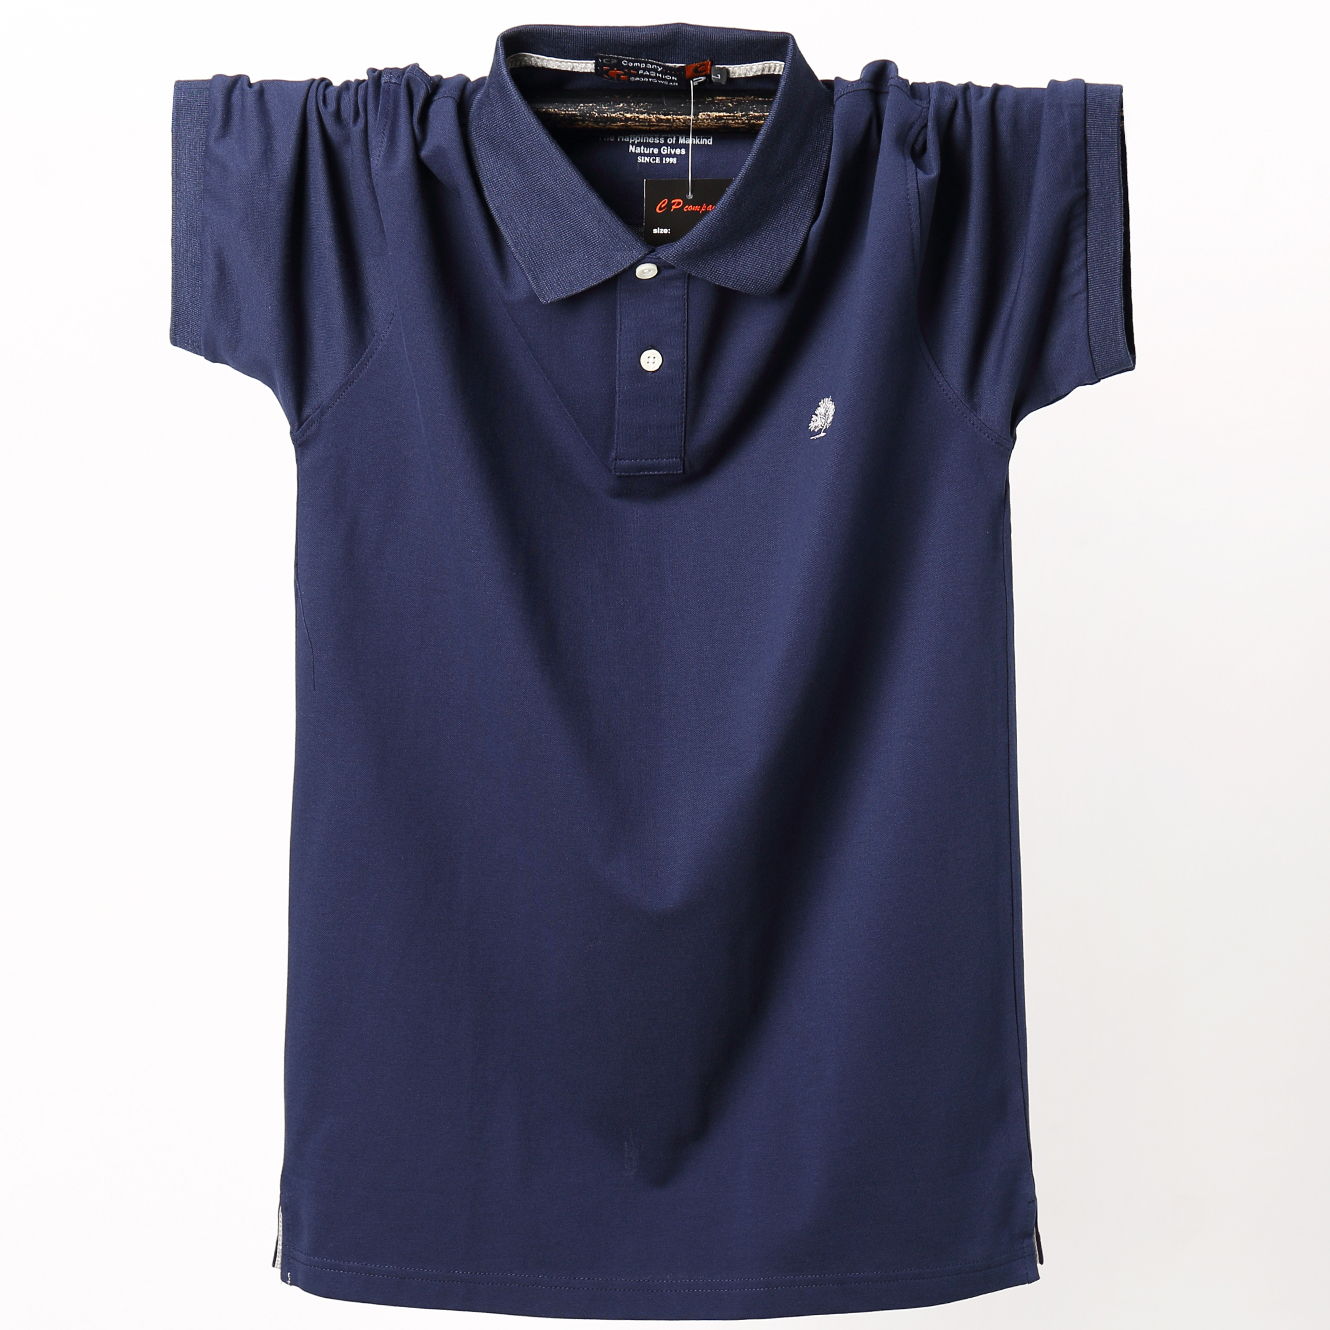 Mens Short Sleeve Polo Shirt Plus Size Fat 130kg Big And Tall Man